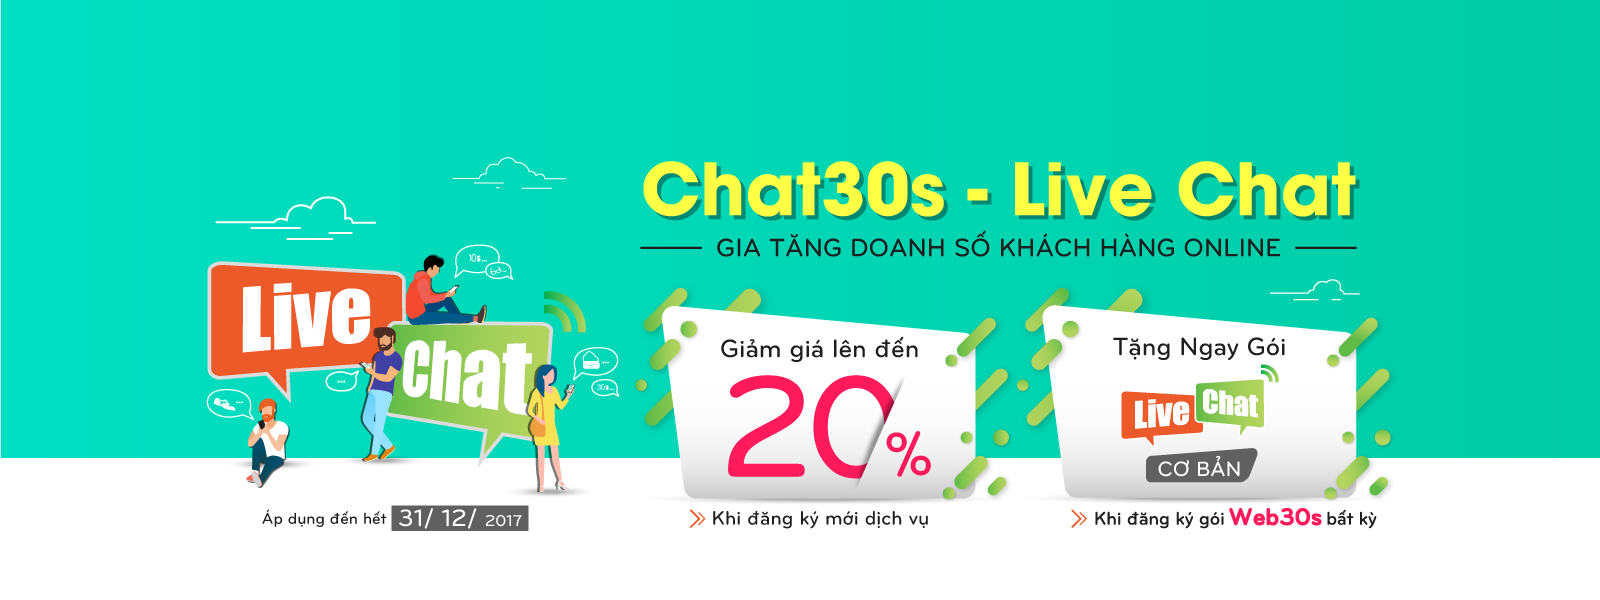 Chat30s